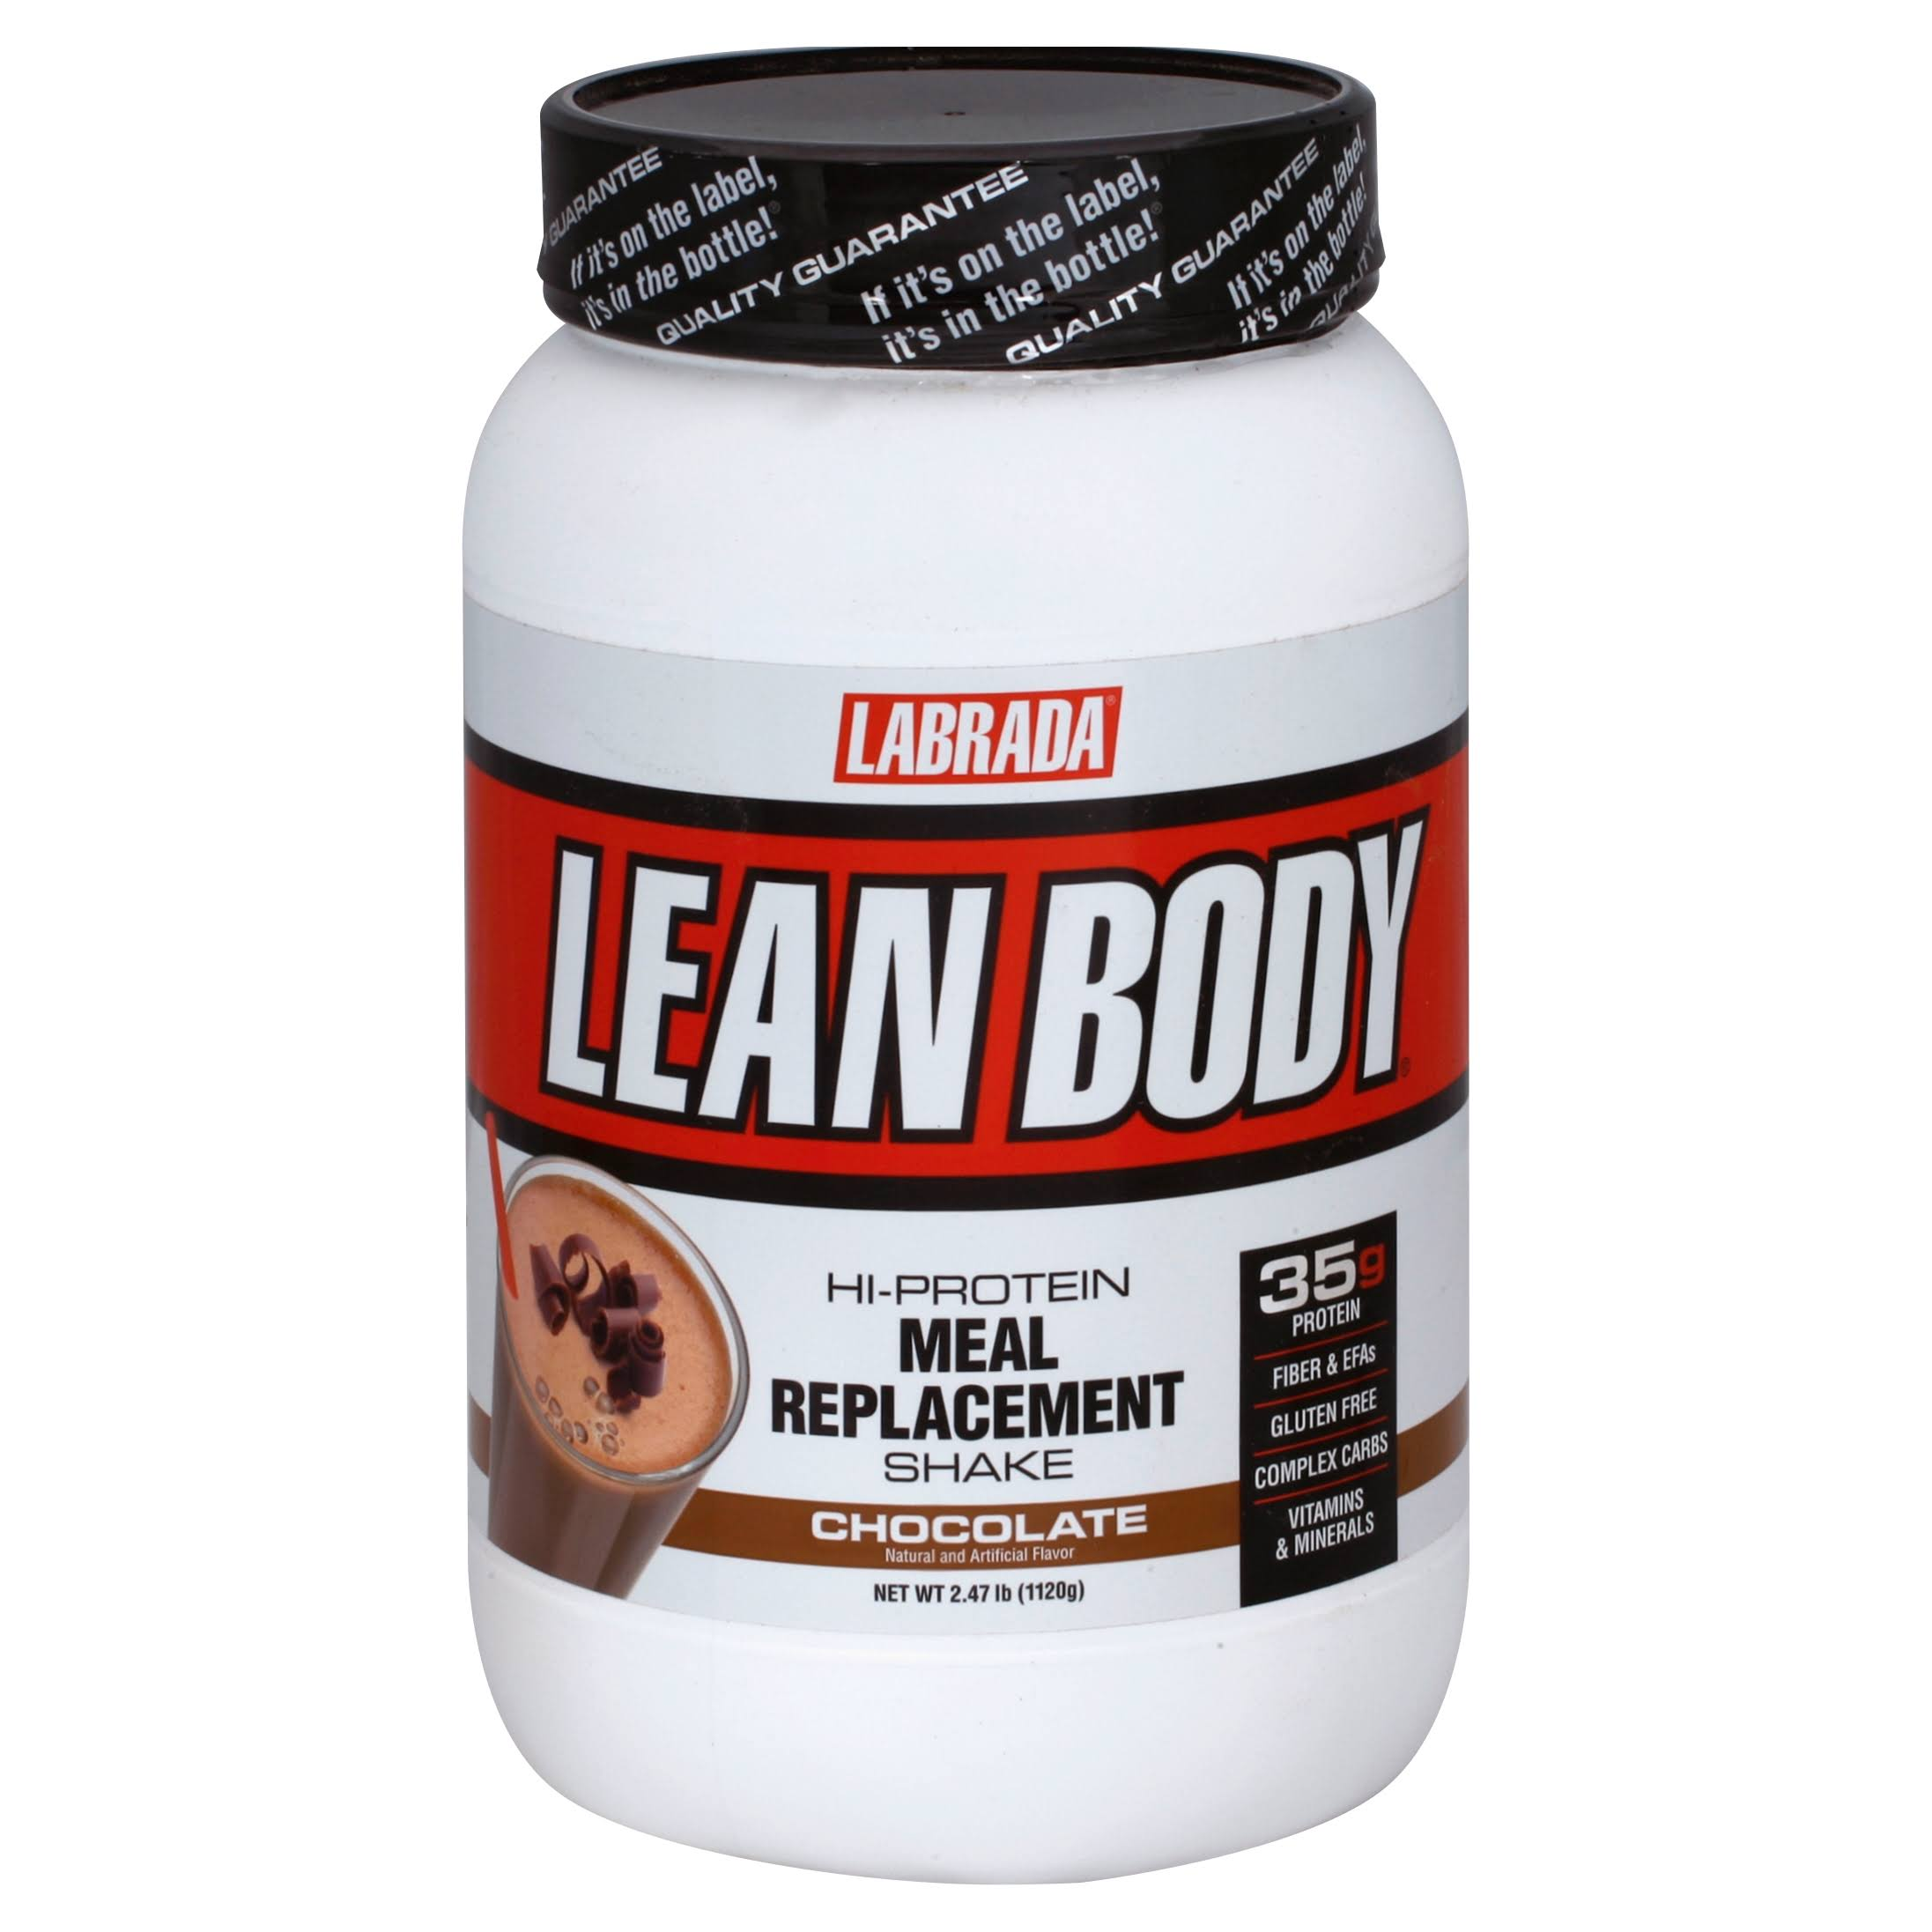 Labrada Nutrition Lean Body High Protein Meal Replacement Shake - Chocolate, 2.47lbs